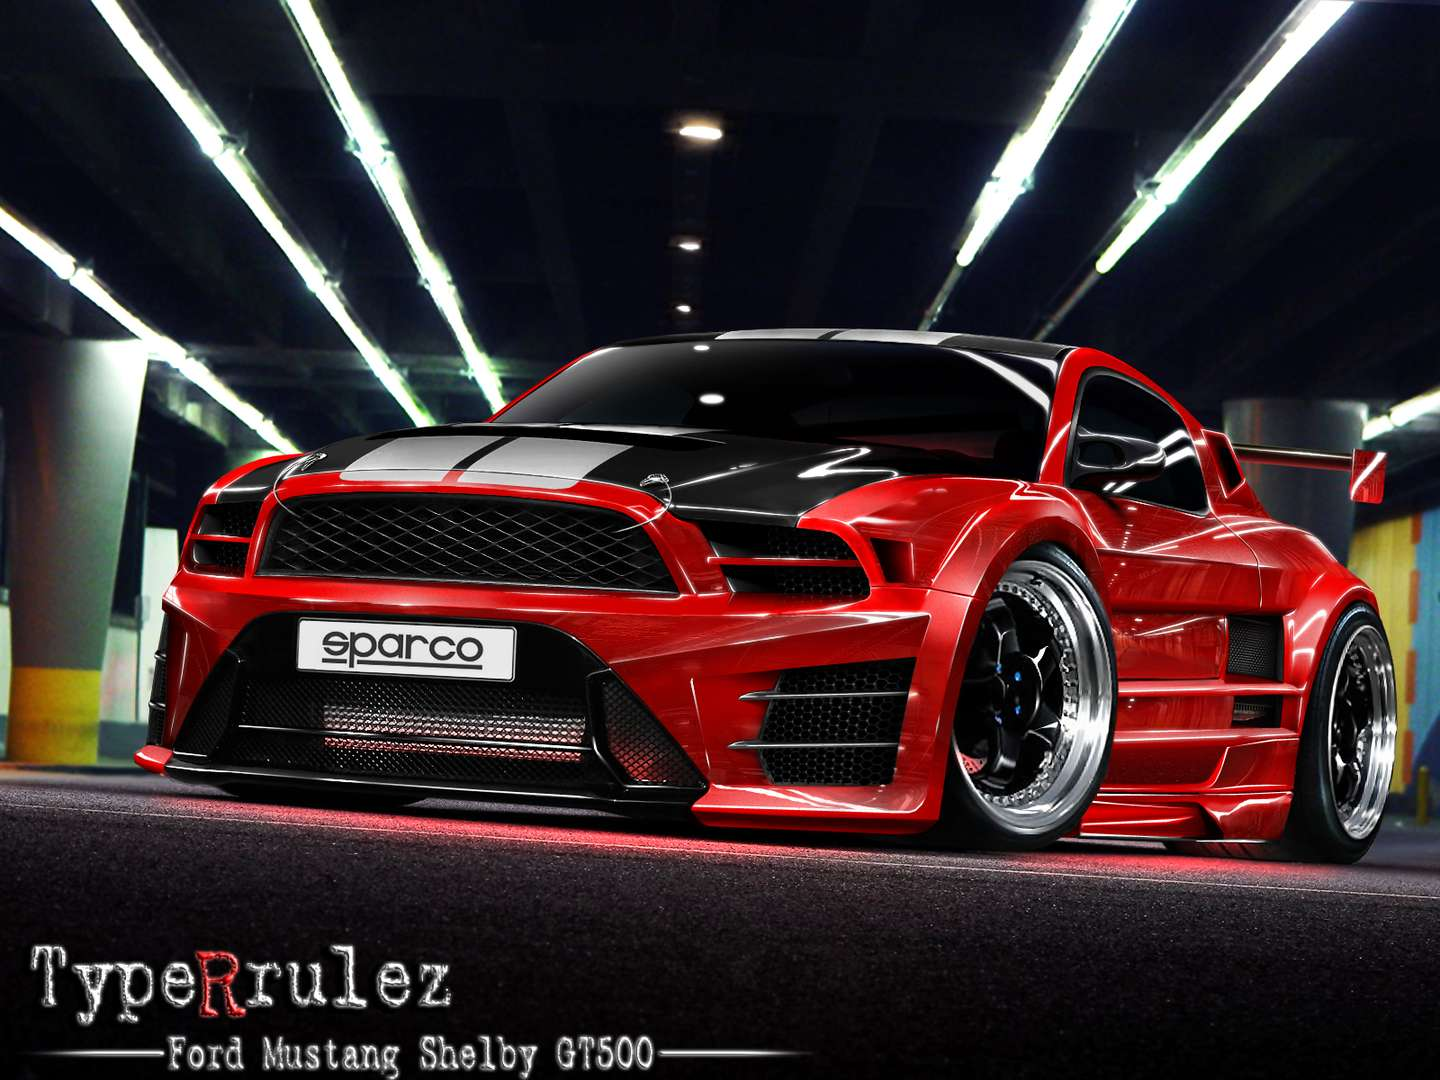 Ford Mustang Shelby GT500 #8816537